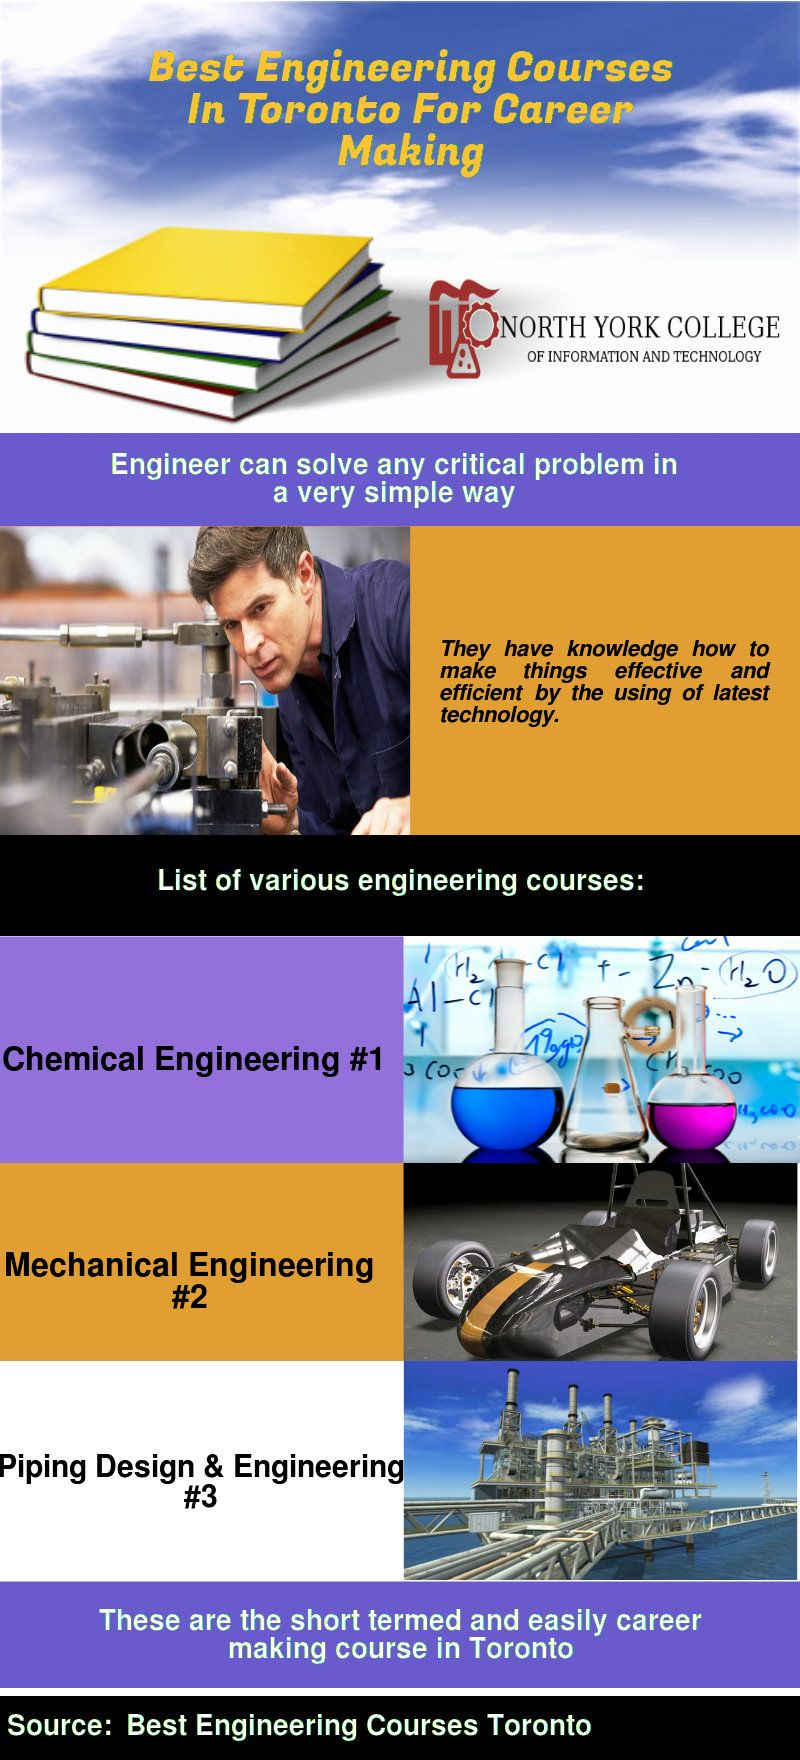 Here you got the information about different engineering